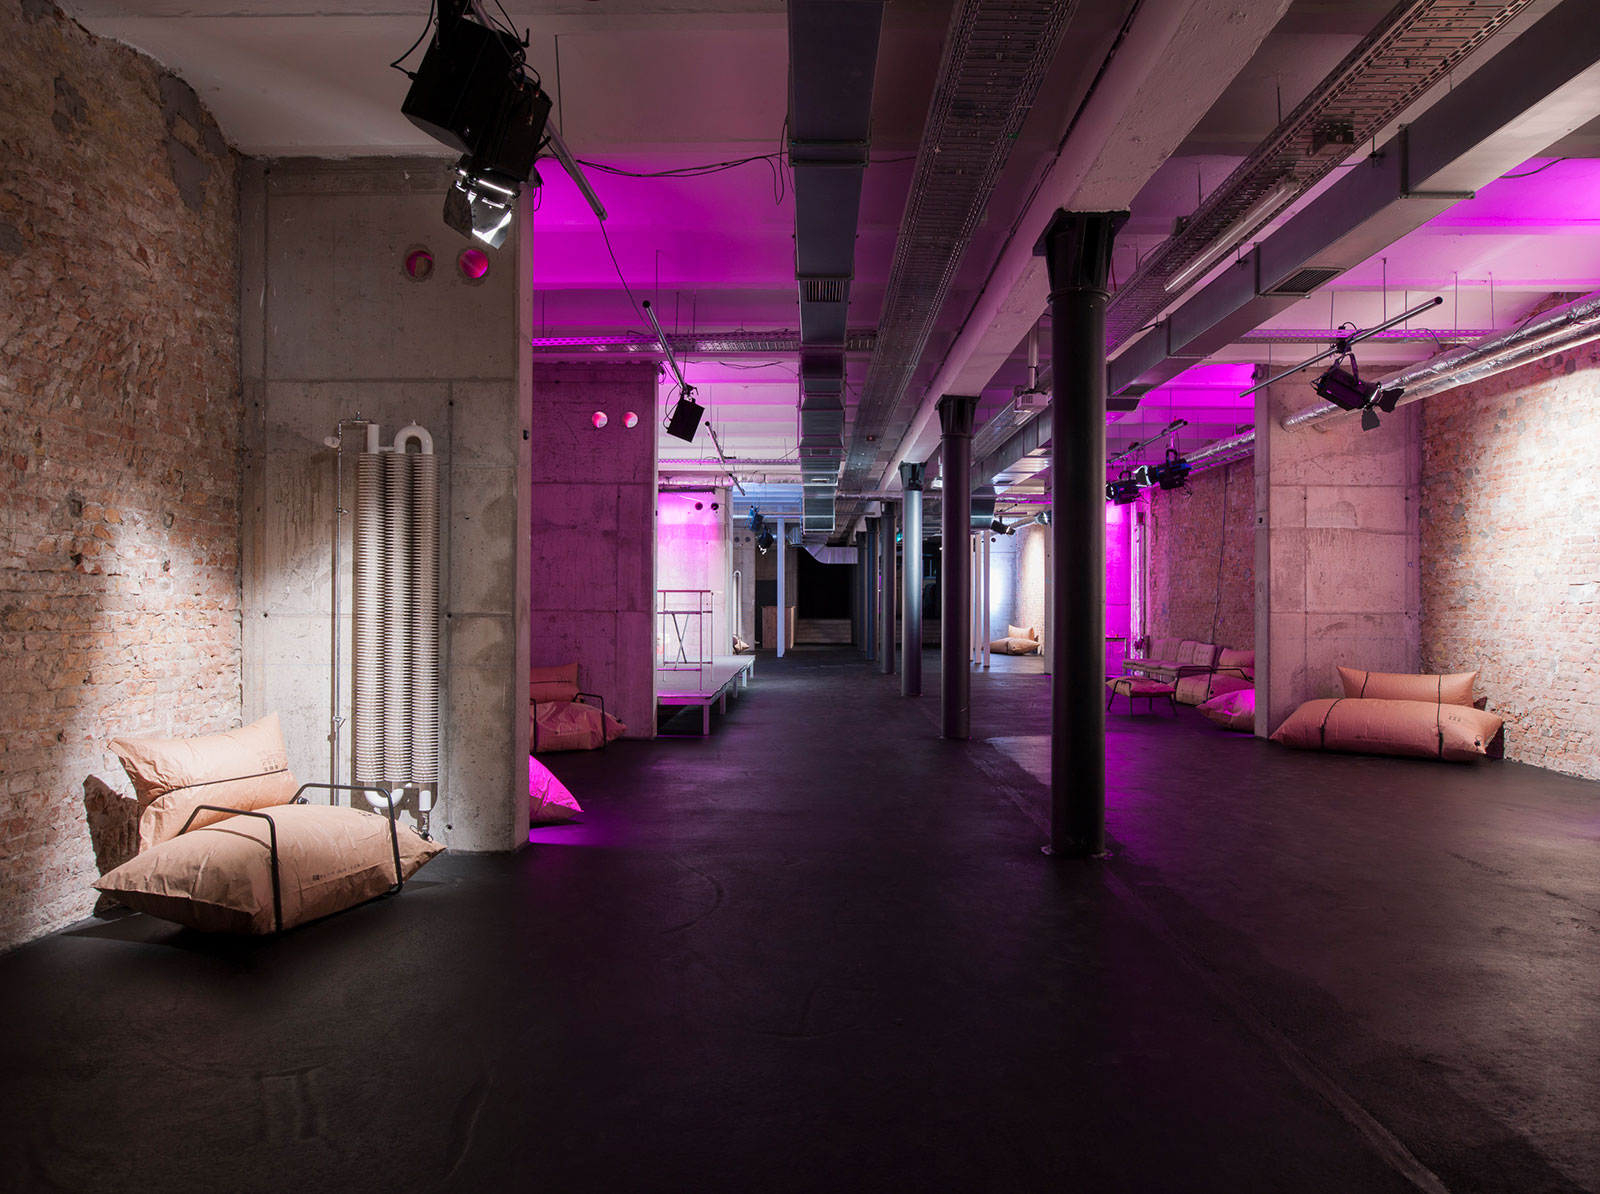 Factory Berlin is home to the city's freelance creatives. While the pandemic has been reducing capacity and forcing lockdowns, the hub has taken its events programme and networking events online to keep its community connected